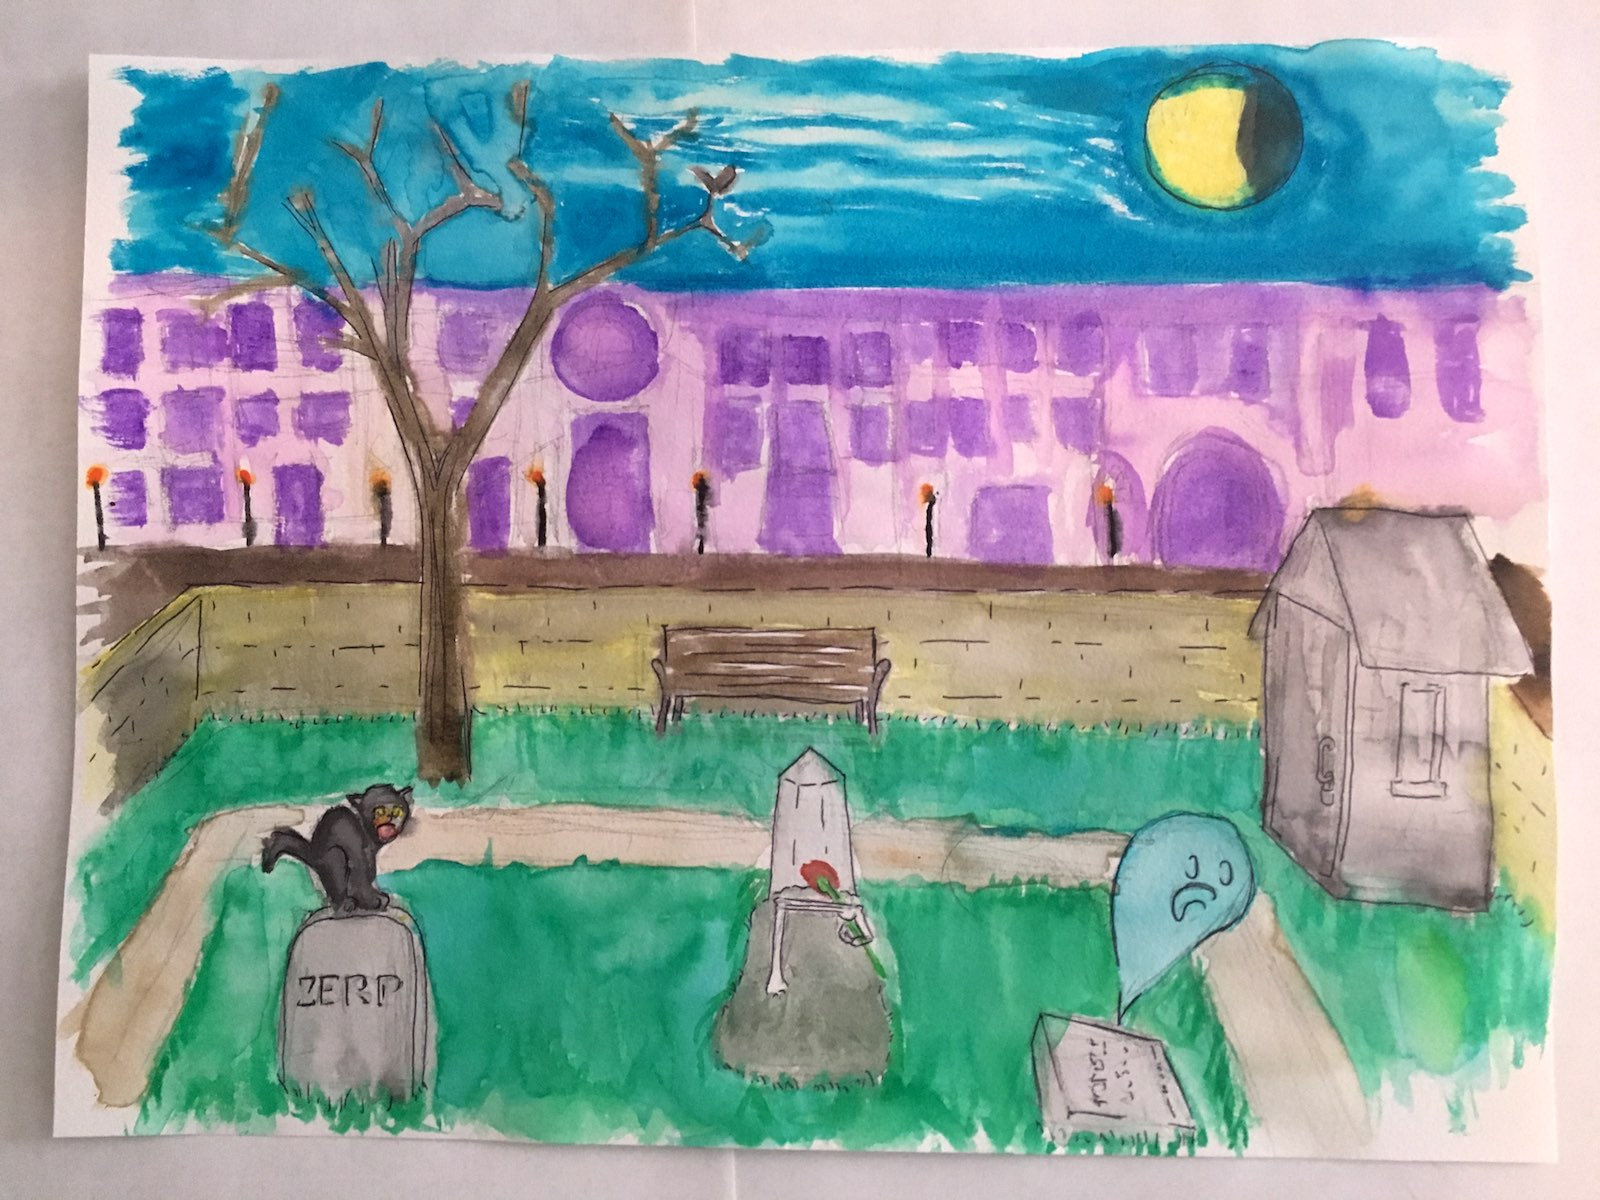 A watercolor painting of a graveyard in 1816, with a small ghost and a skeleton hand emerging from a fresh grave